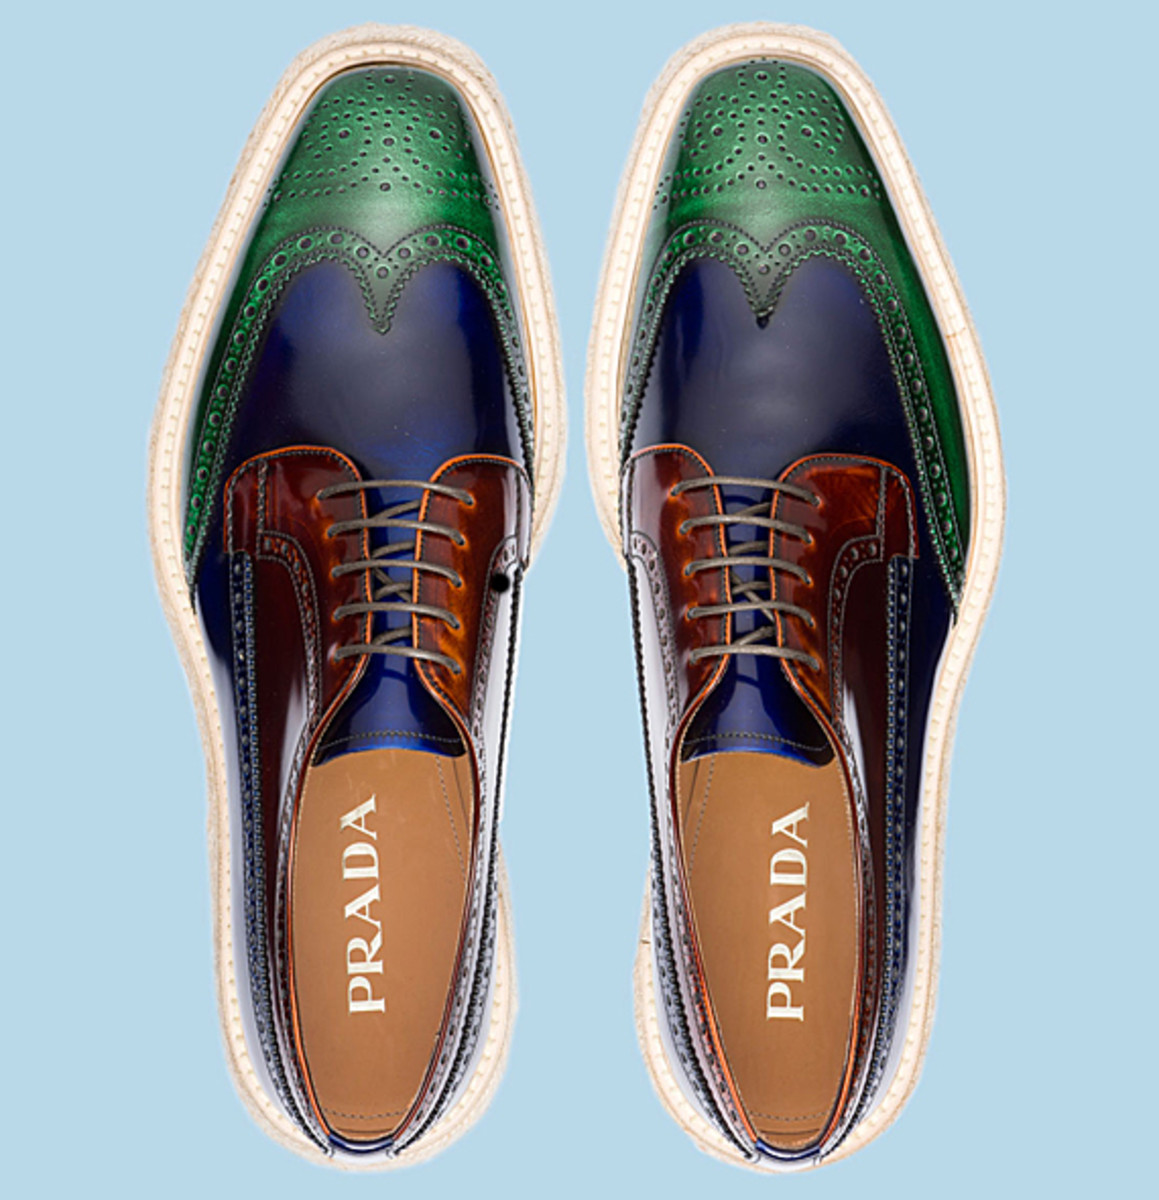 prada-tricolor-brushed-leather-lace-up-05